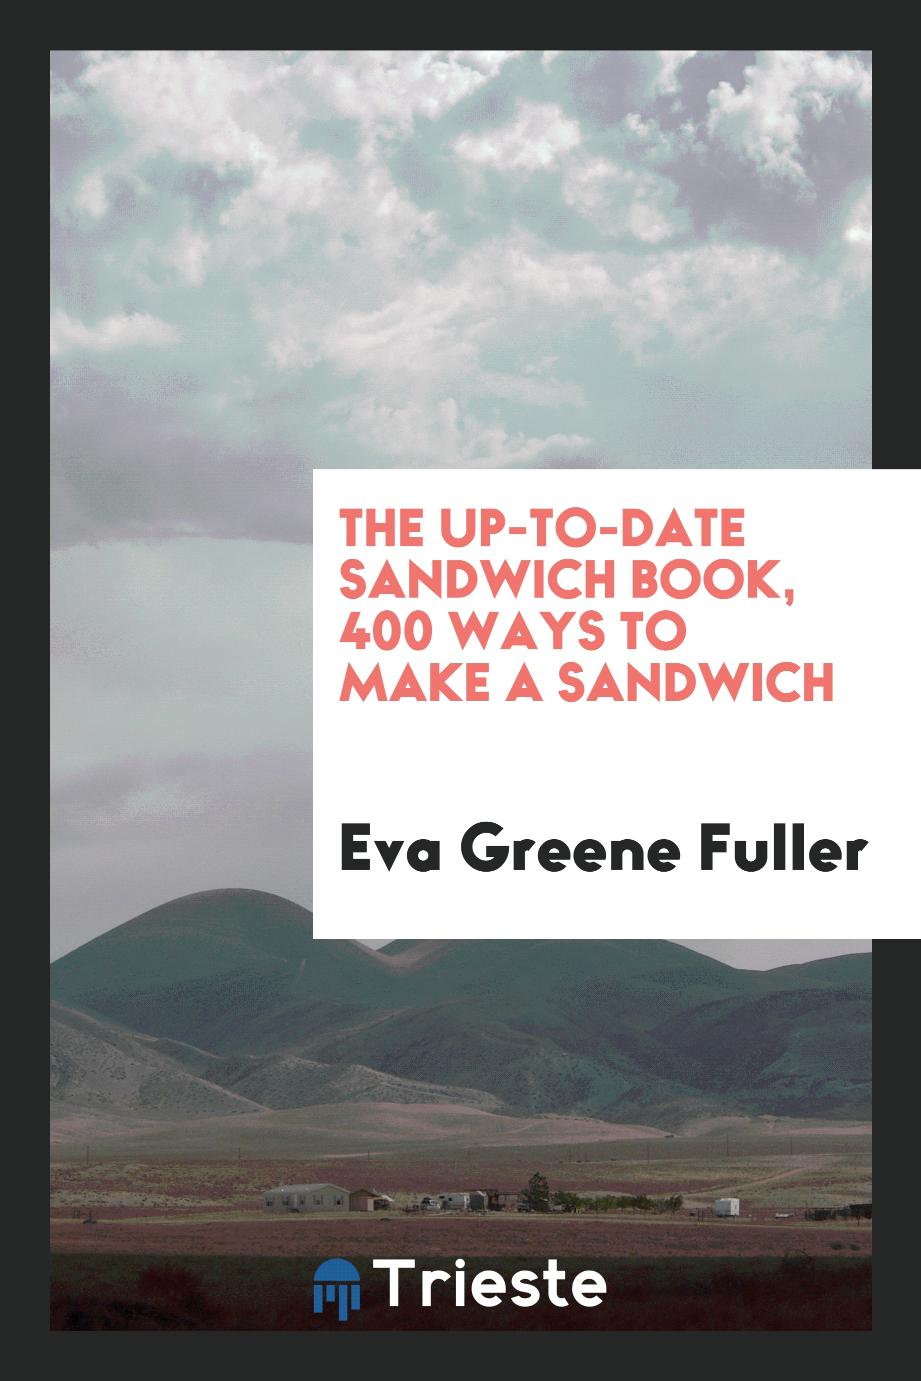 The Up-to-Date Sandwich Book, 400 Ways to Make a Sandwich